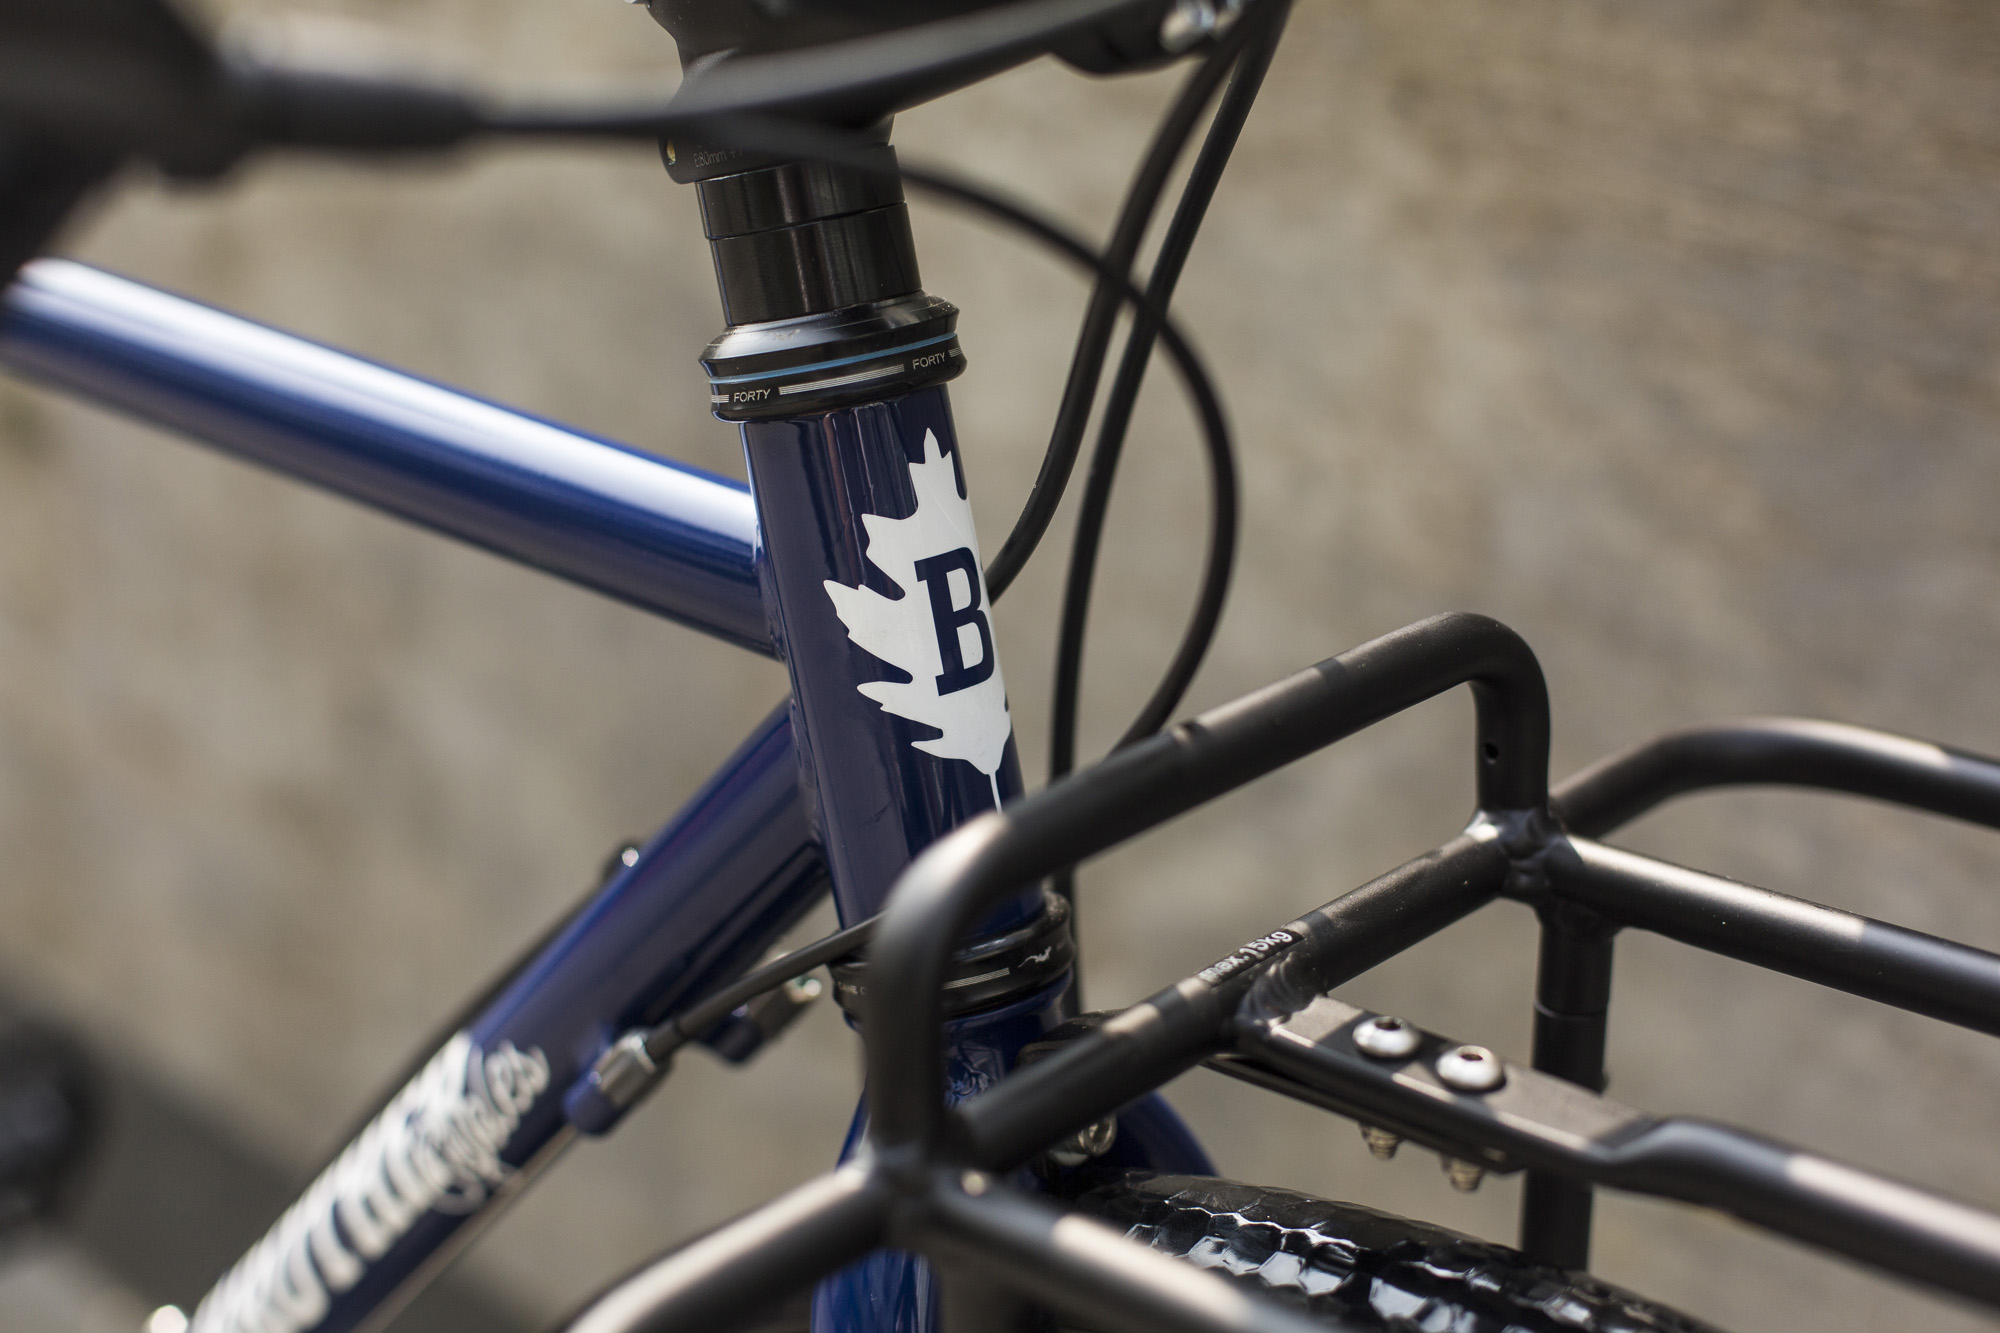 seabass-cycles-instore-bikes-17-april-2019-brother-cycles-kepler-disc-custom-build-midnight-blue-5091.jpg